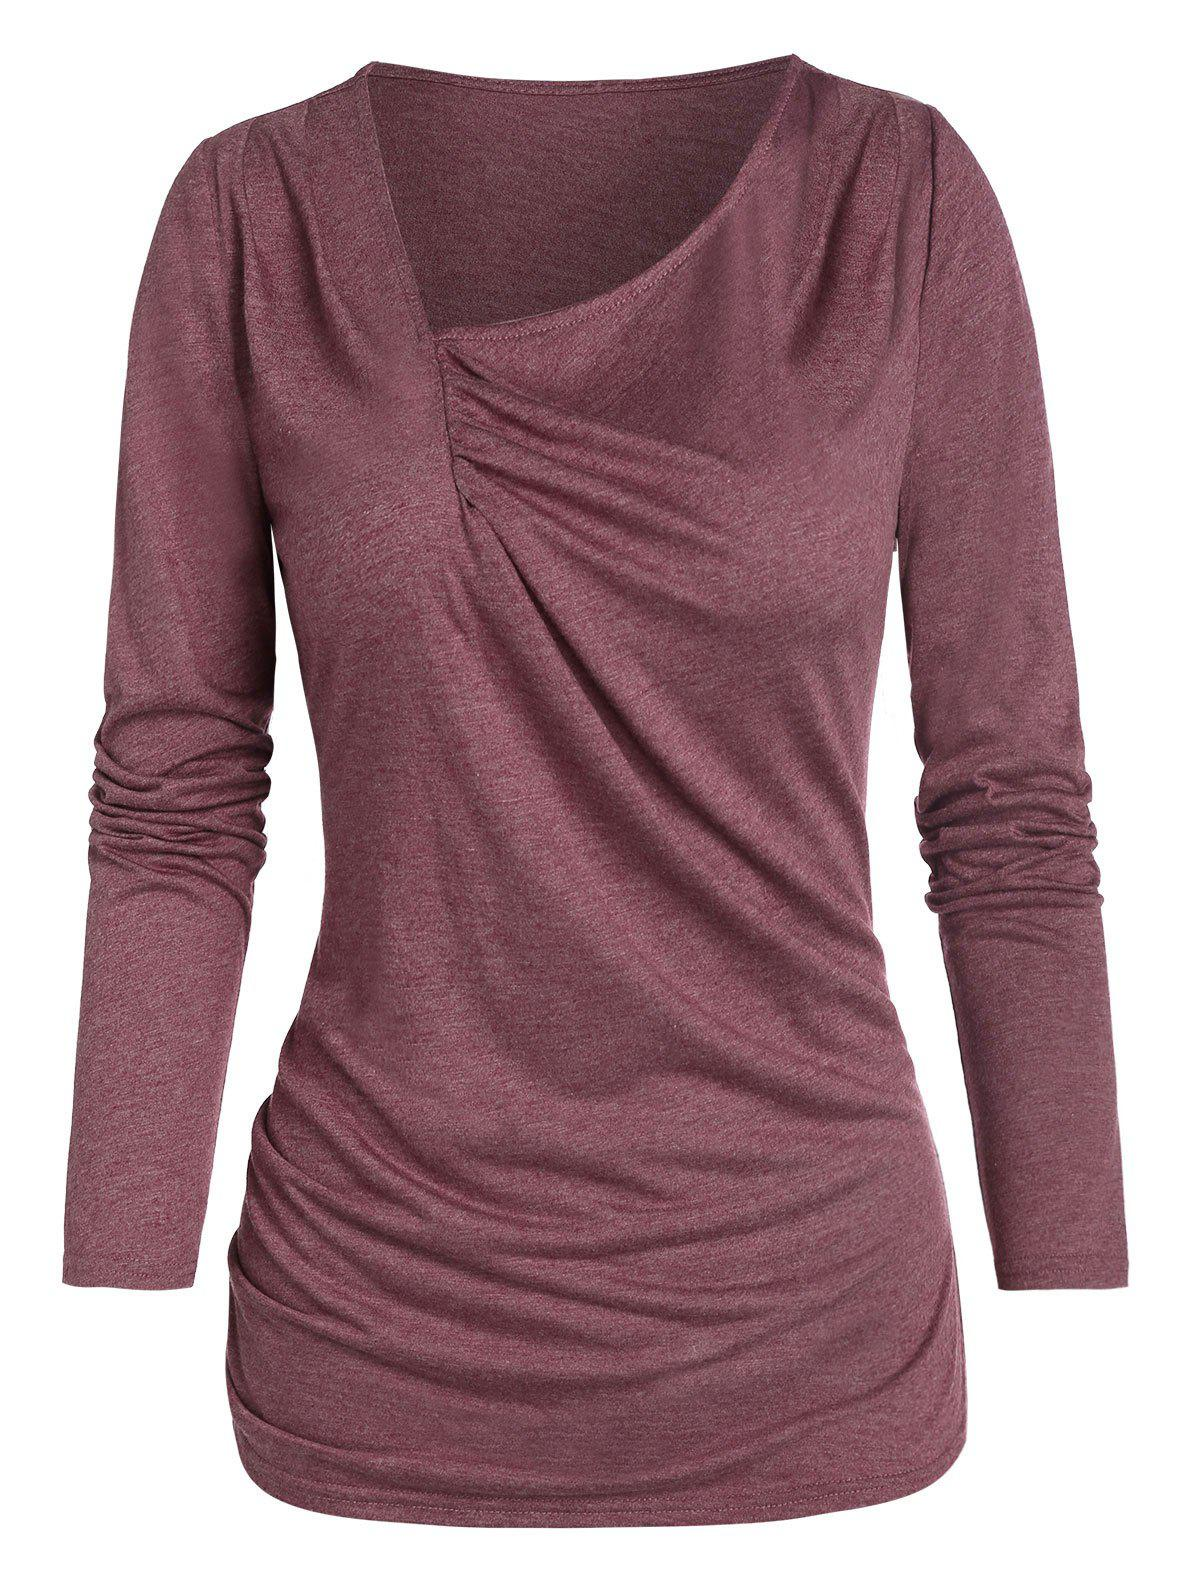 Ruched Front Long Sleeve Marled T-shirt - FIREBRICK XL